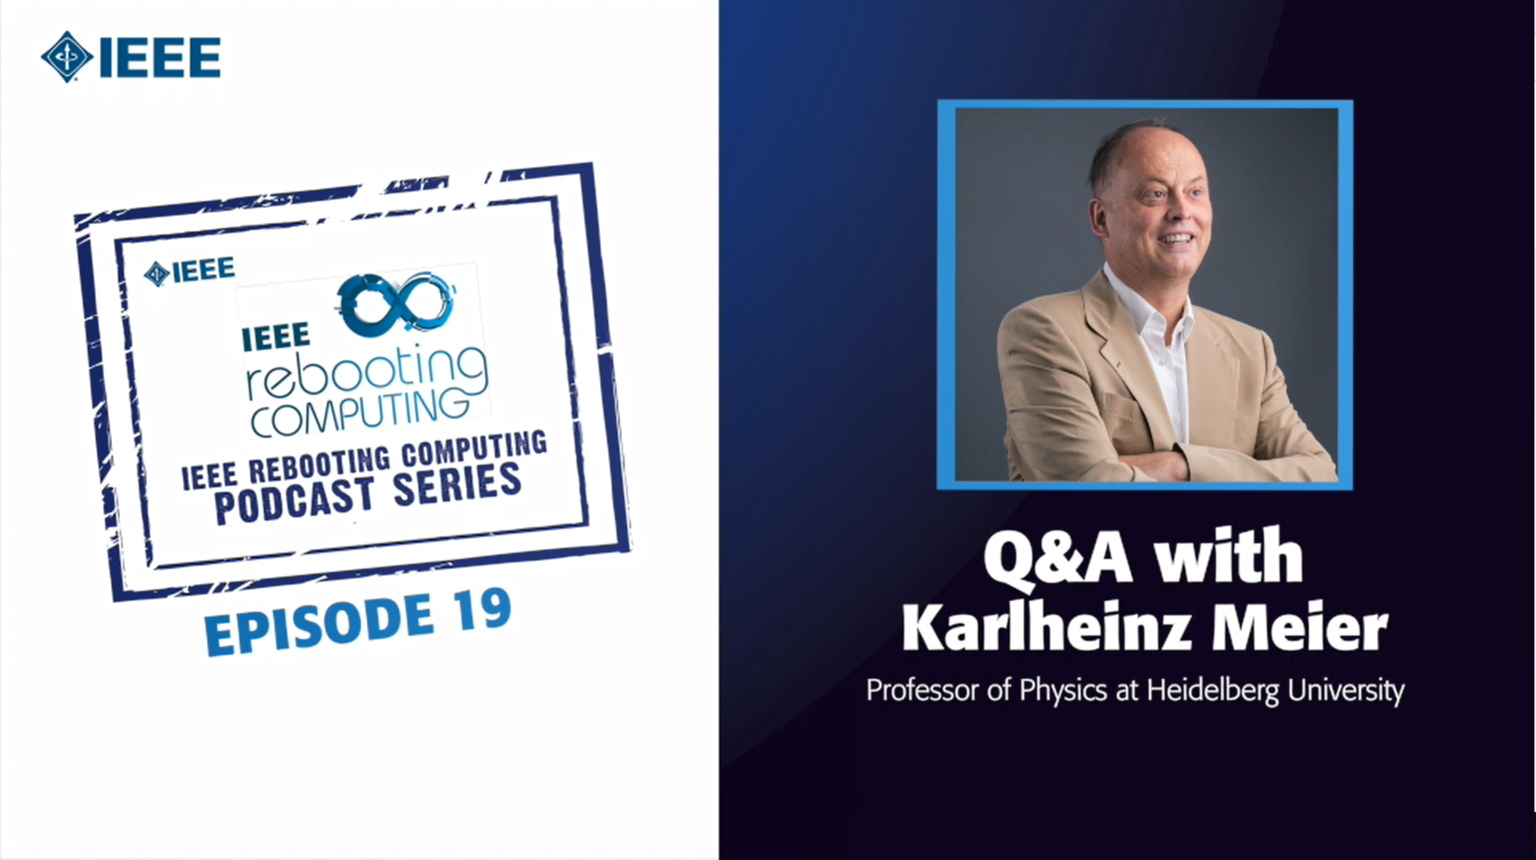 Q&A with Karlheinz Meier: IEEE Rebooting Computing Podcast, Episode 19